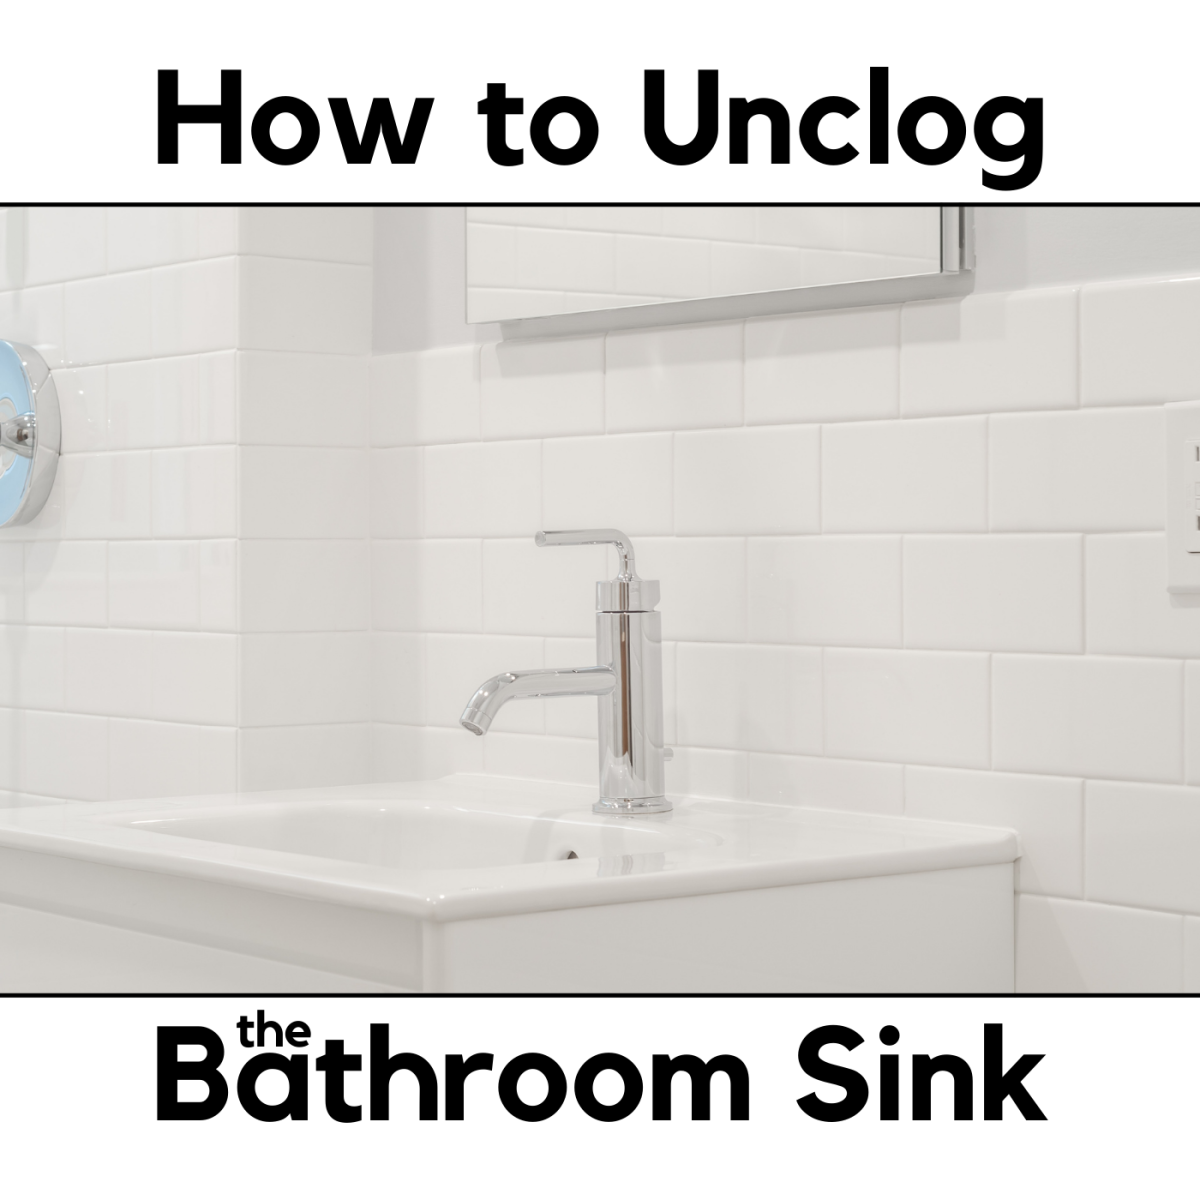 How to Unclog the Bathroom Sink